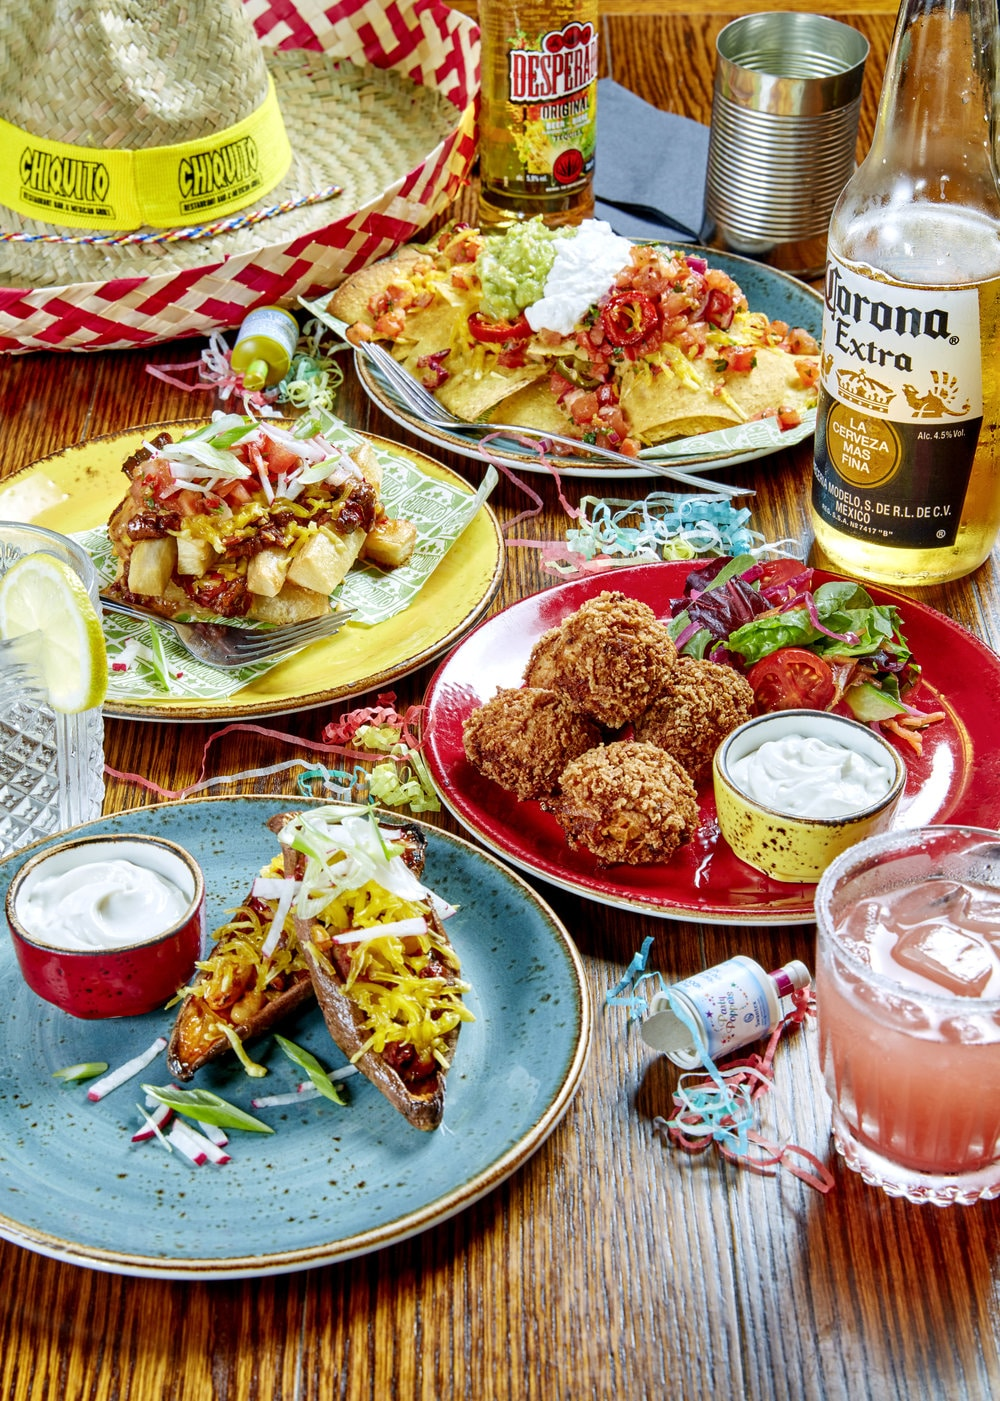 Chiquito Takes Vegan To The Mex Level With Their Biggest Ever Vegan Menu Shake Up